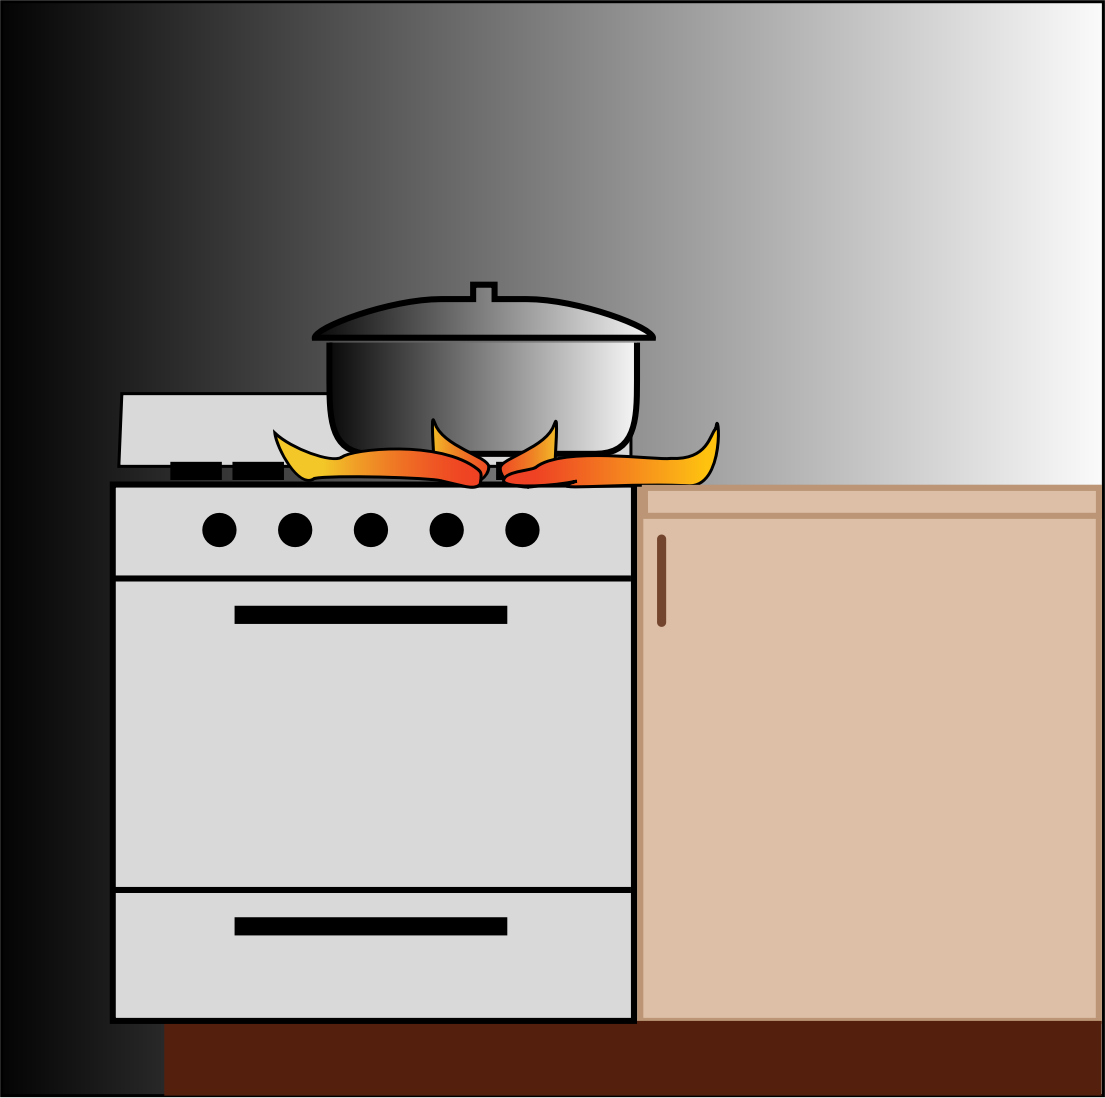 Flames clipart stove fire. Pot on big image